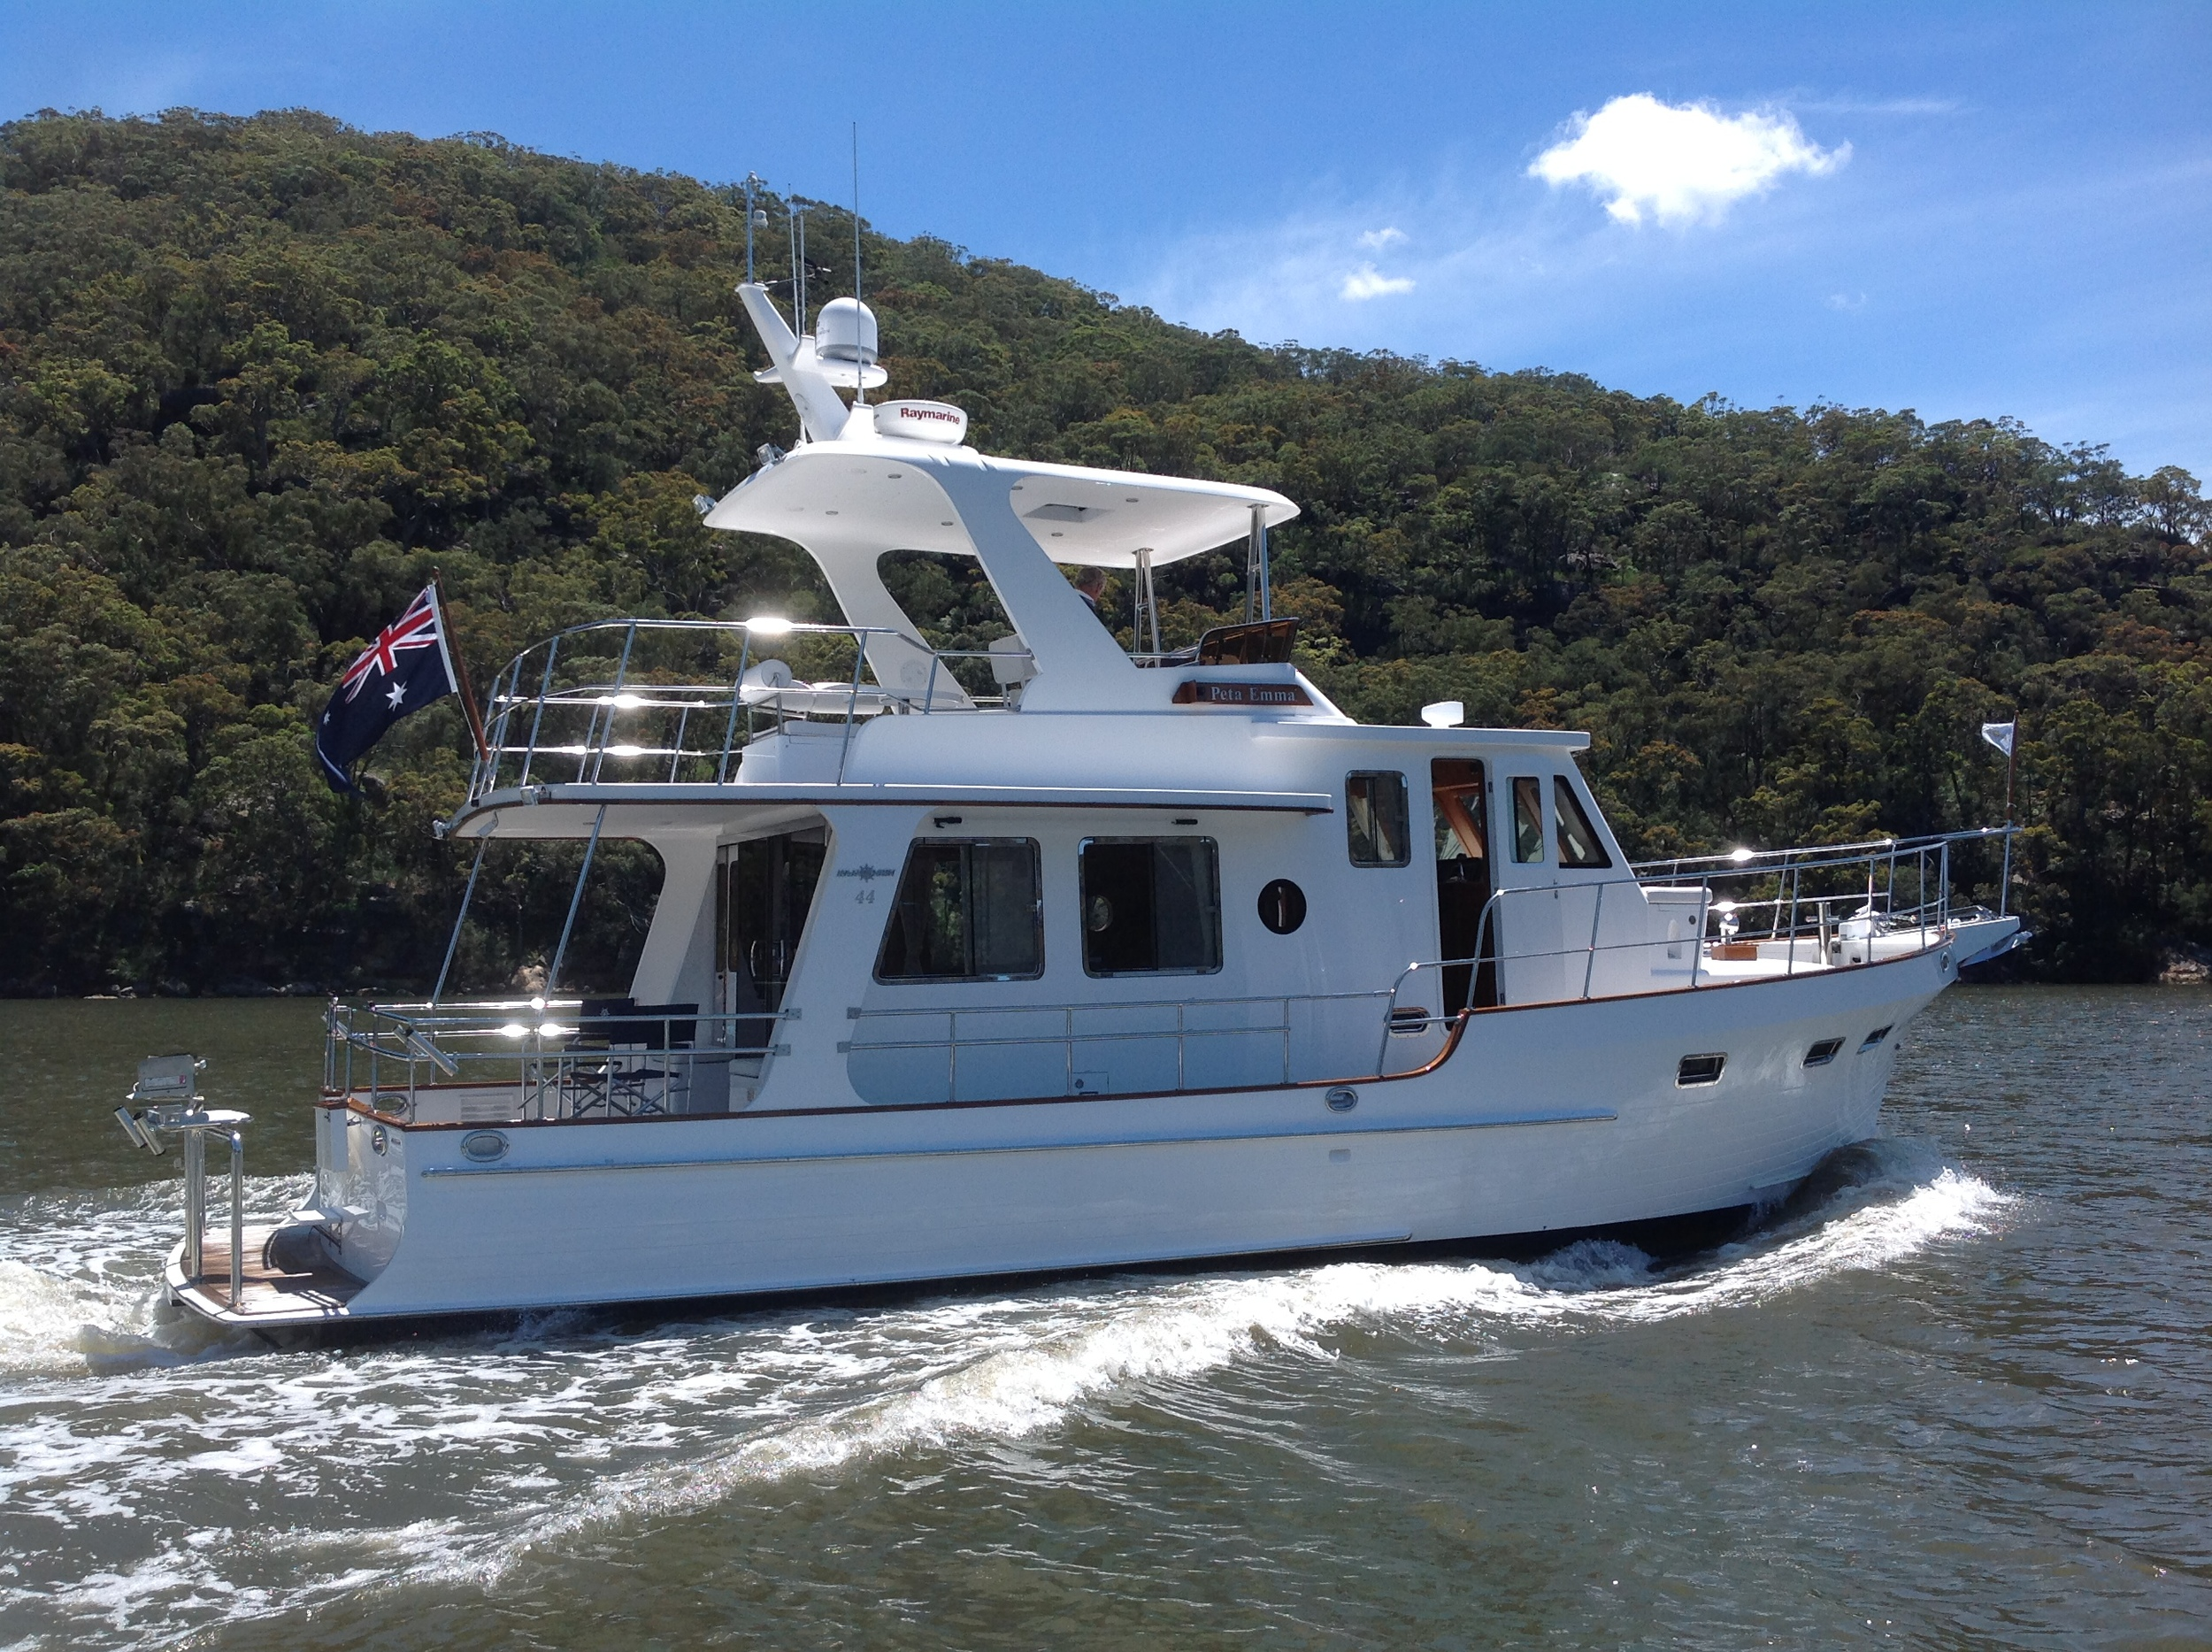 Cruising up the beautiful Hawkesbury River on the Australian East Coast